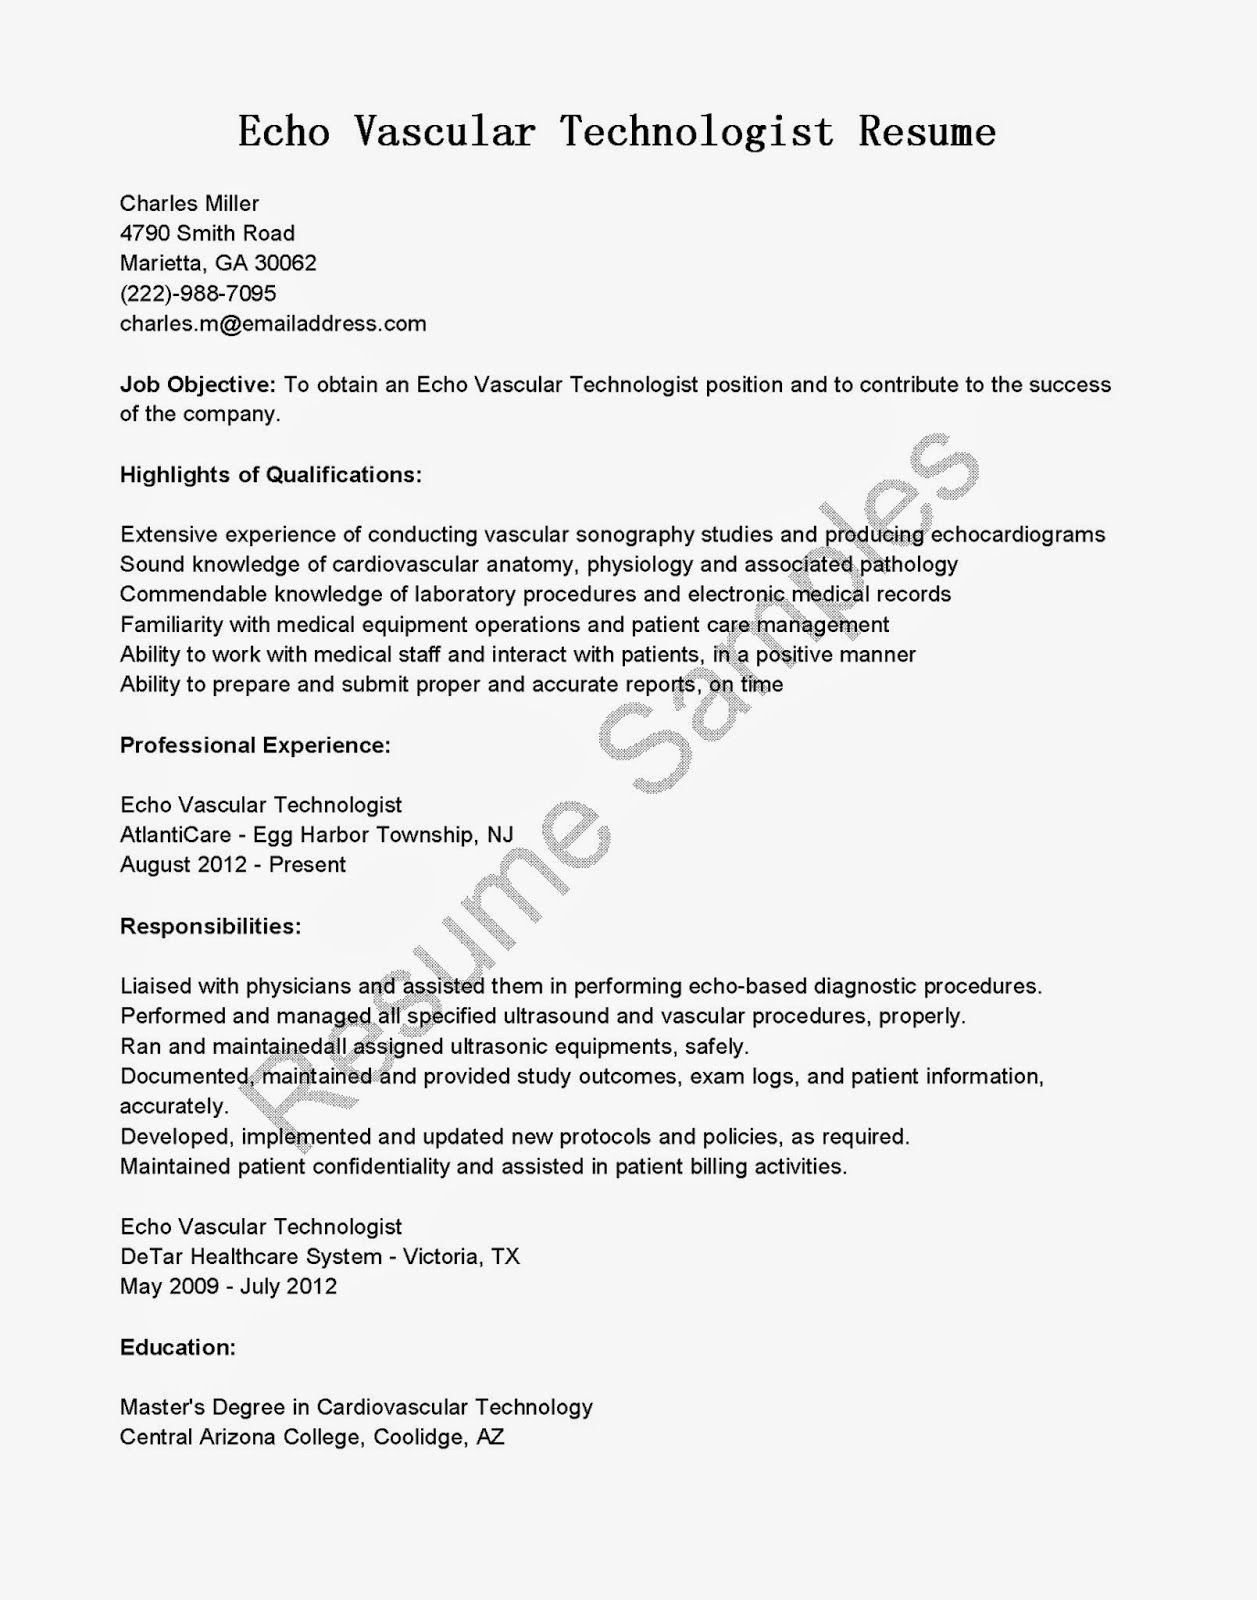 sonogram technician cover letter international consultant cover letter echo2bvascular2btechnologist2bresume sonogram